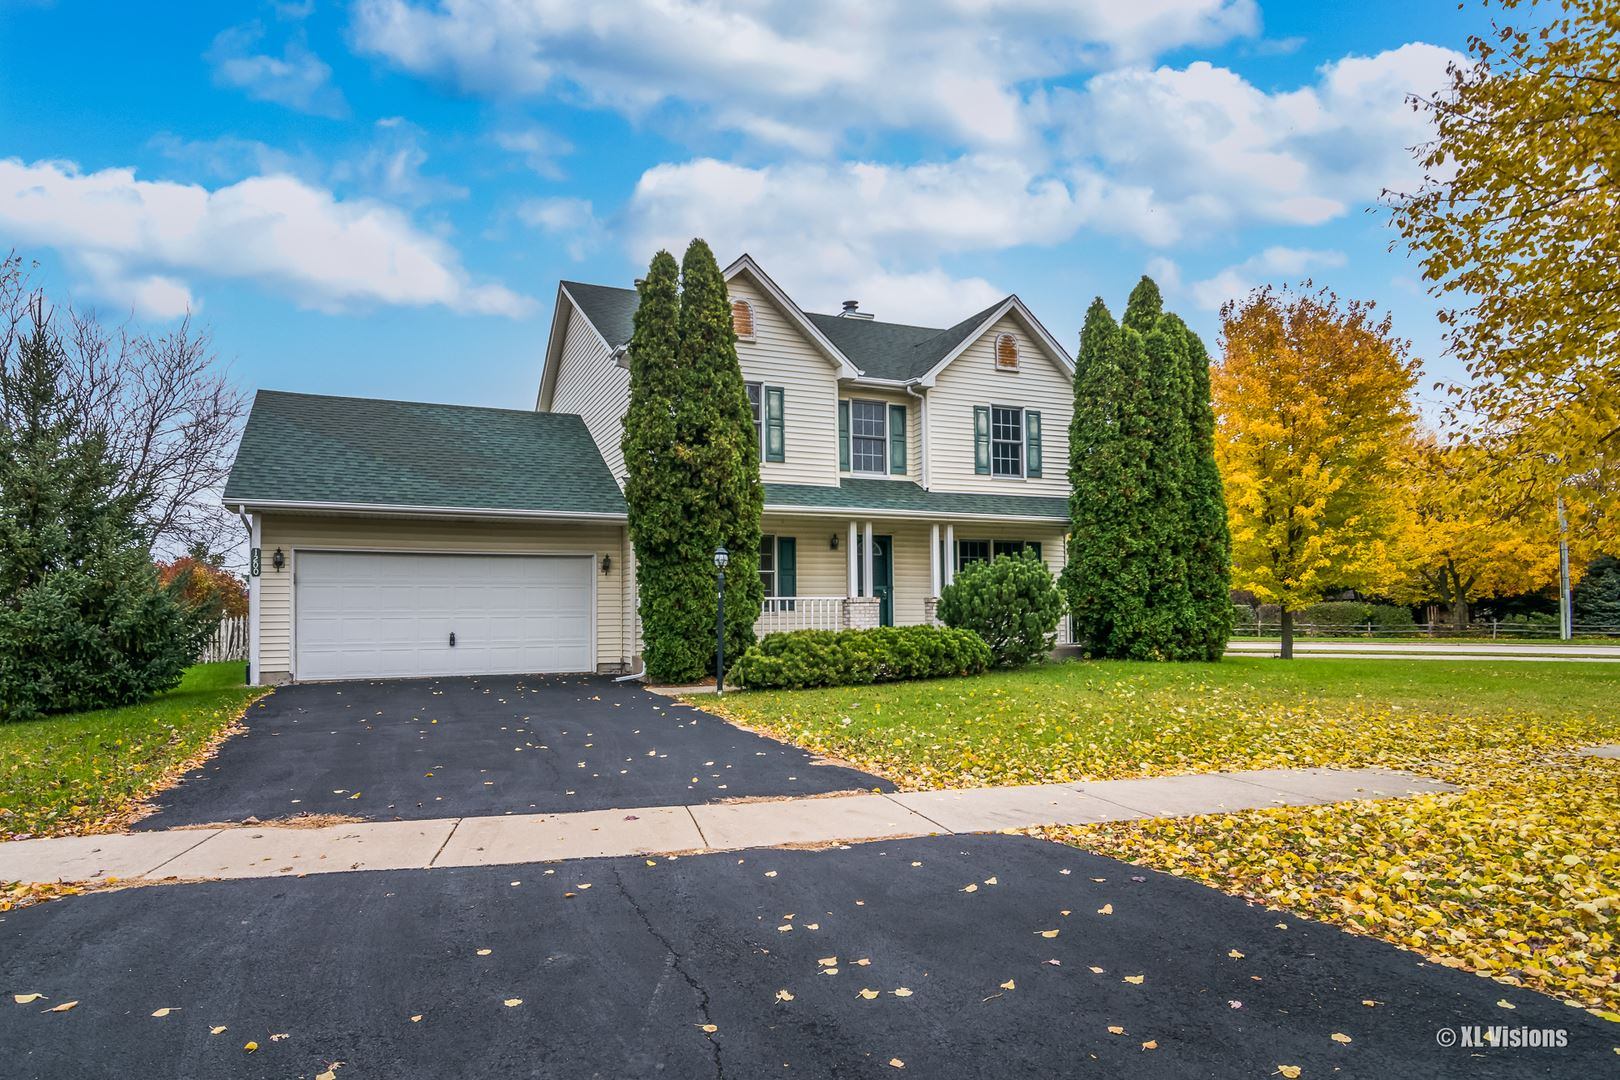 Photo of 1200 Country Drive, Shorewood, IL 60404 (MLS # 10843559)